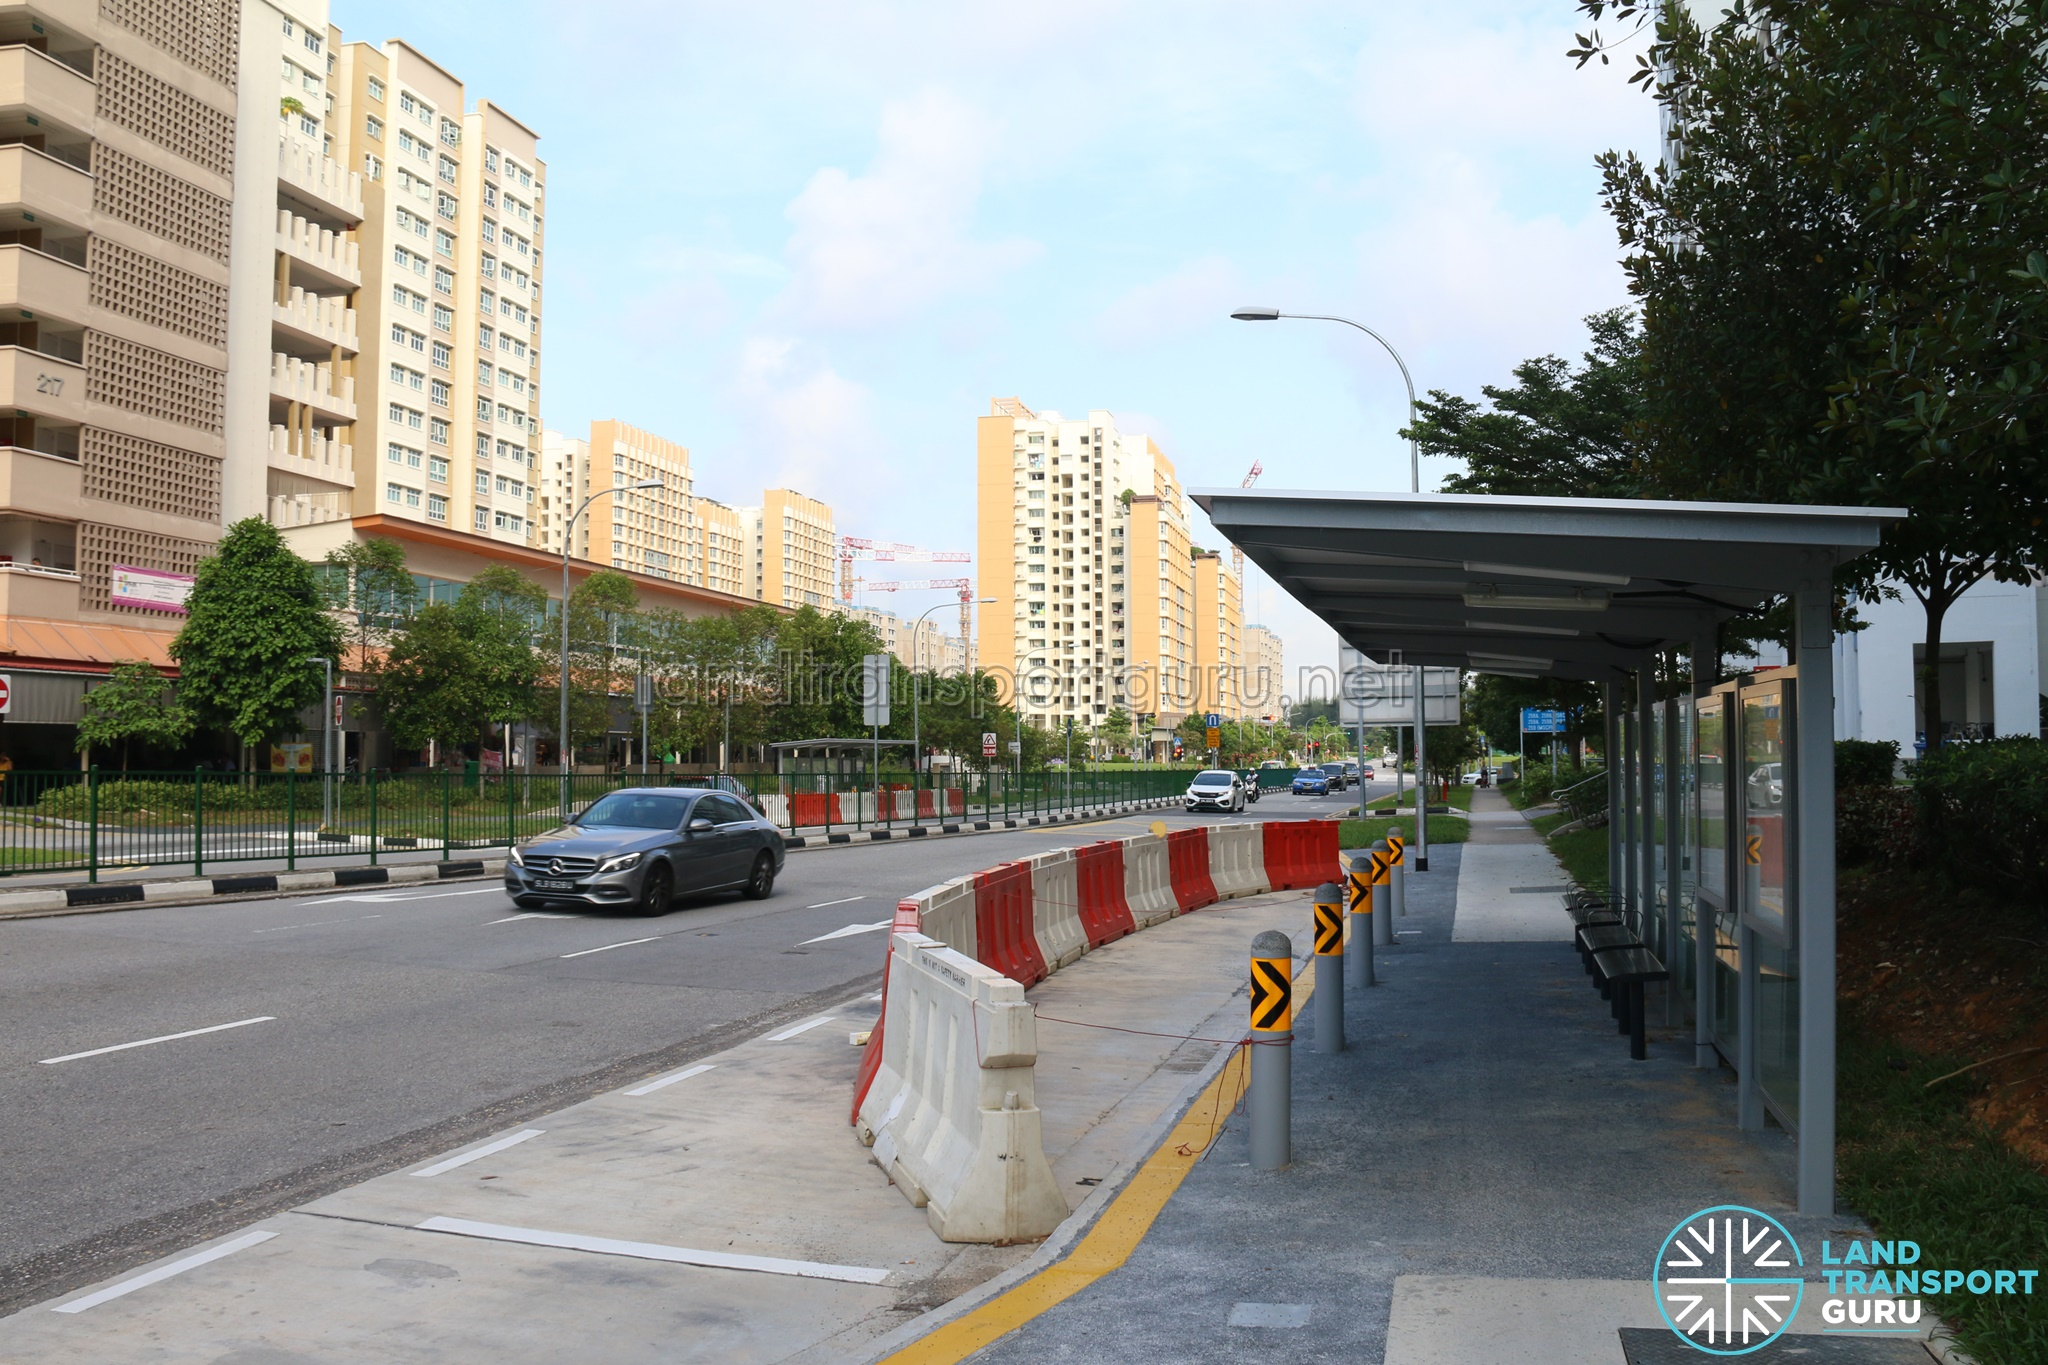 New Bus Stops for Bus 382 along Punggol Field